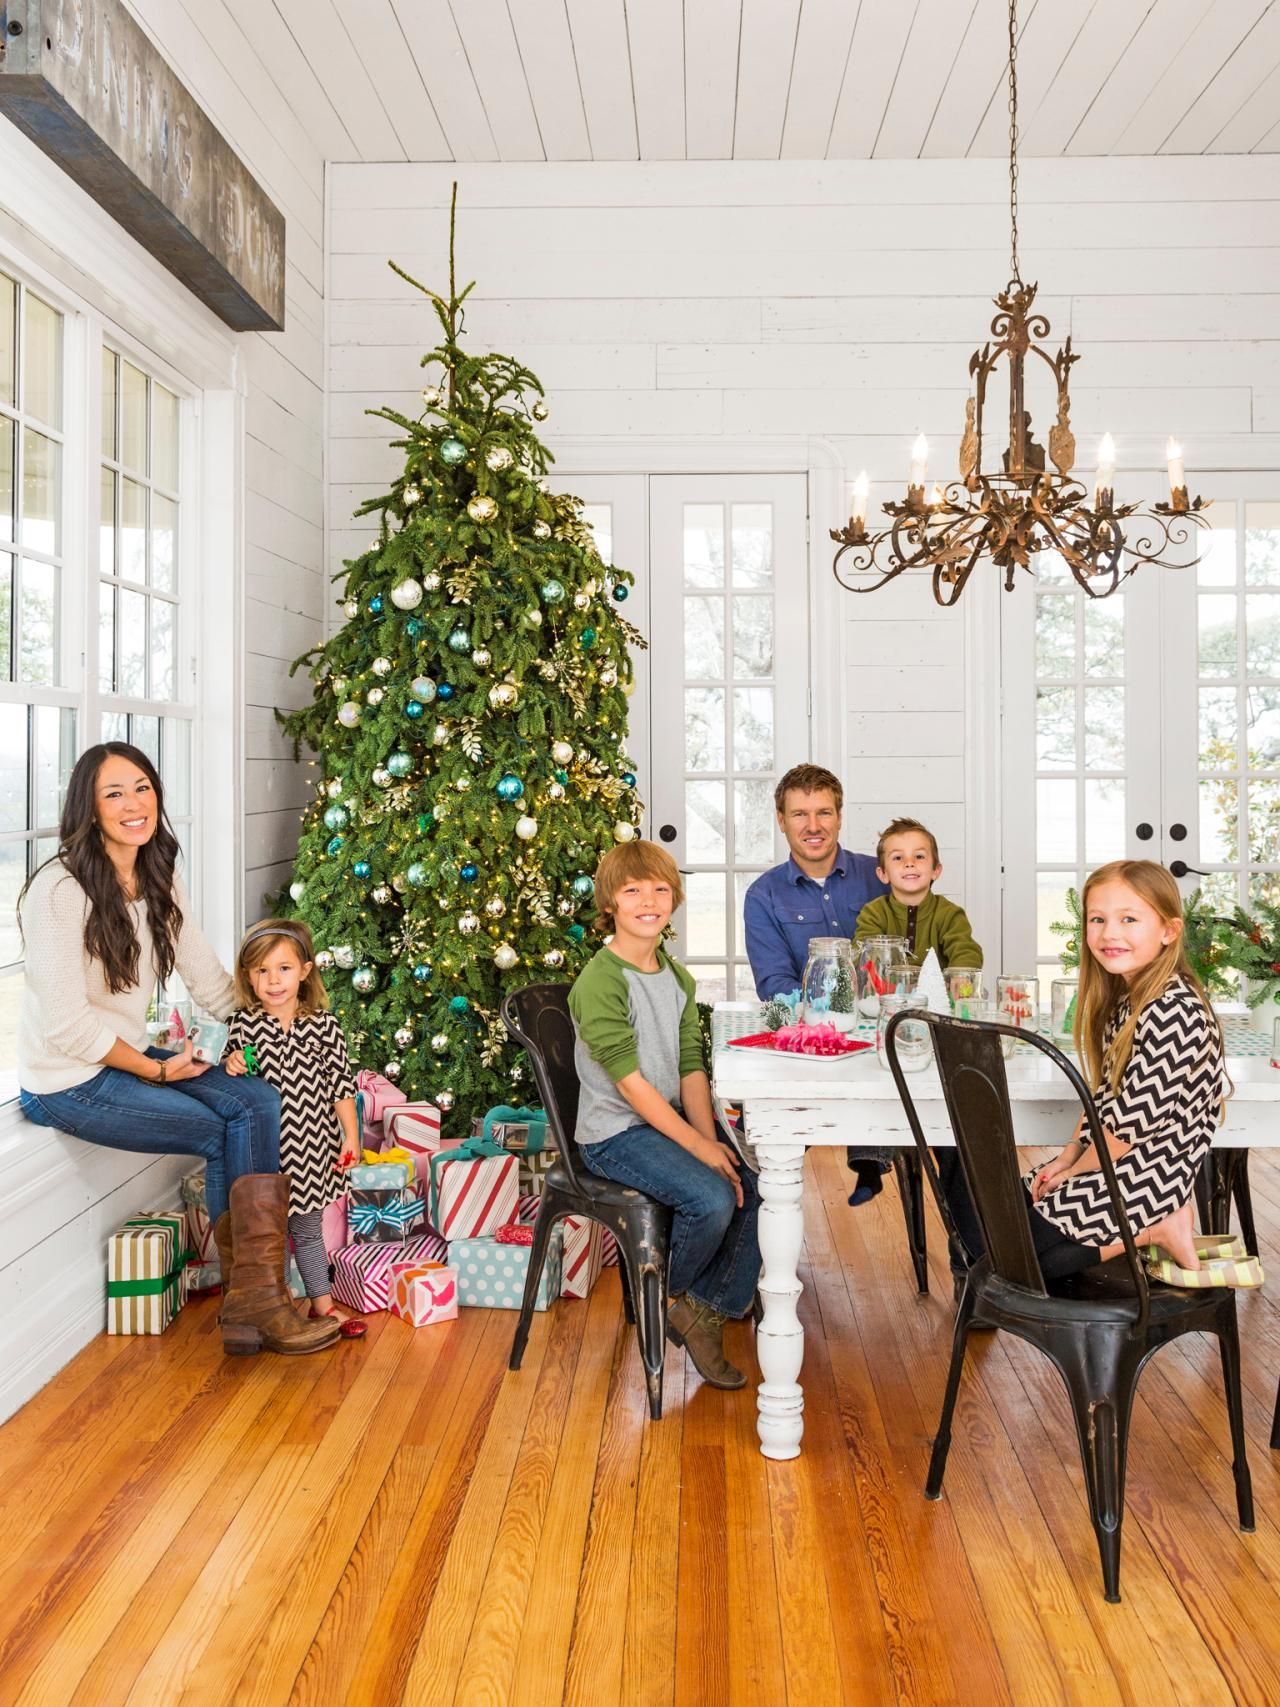 see how baylor grads and stars of hgtvs fixer upper chip and joanna gaines have decorated their home for christmas - Joanna Gaines Christmas Decor